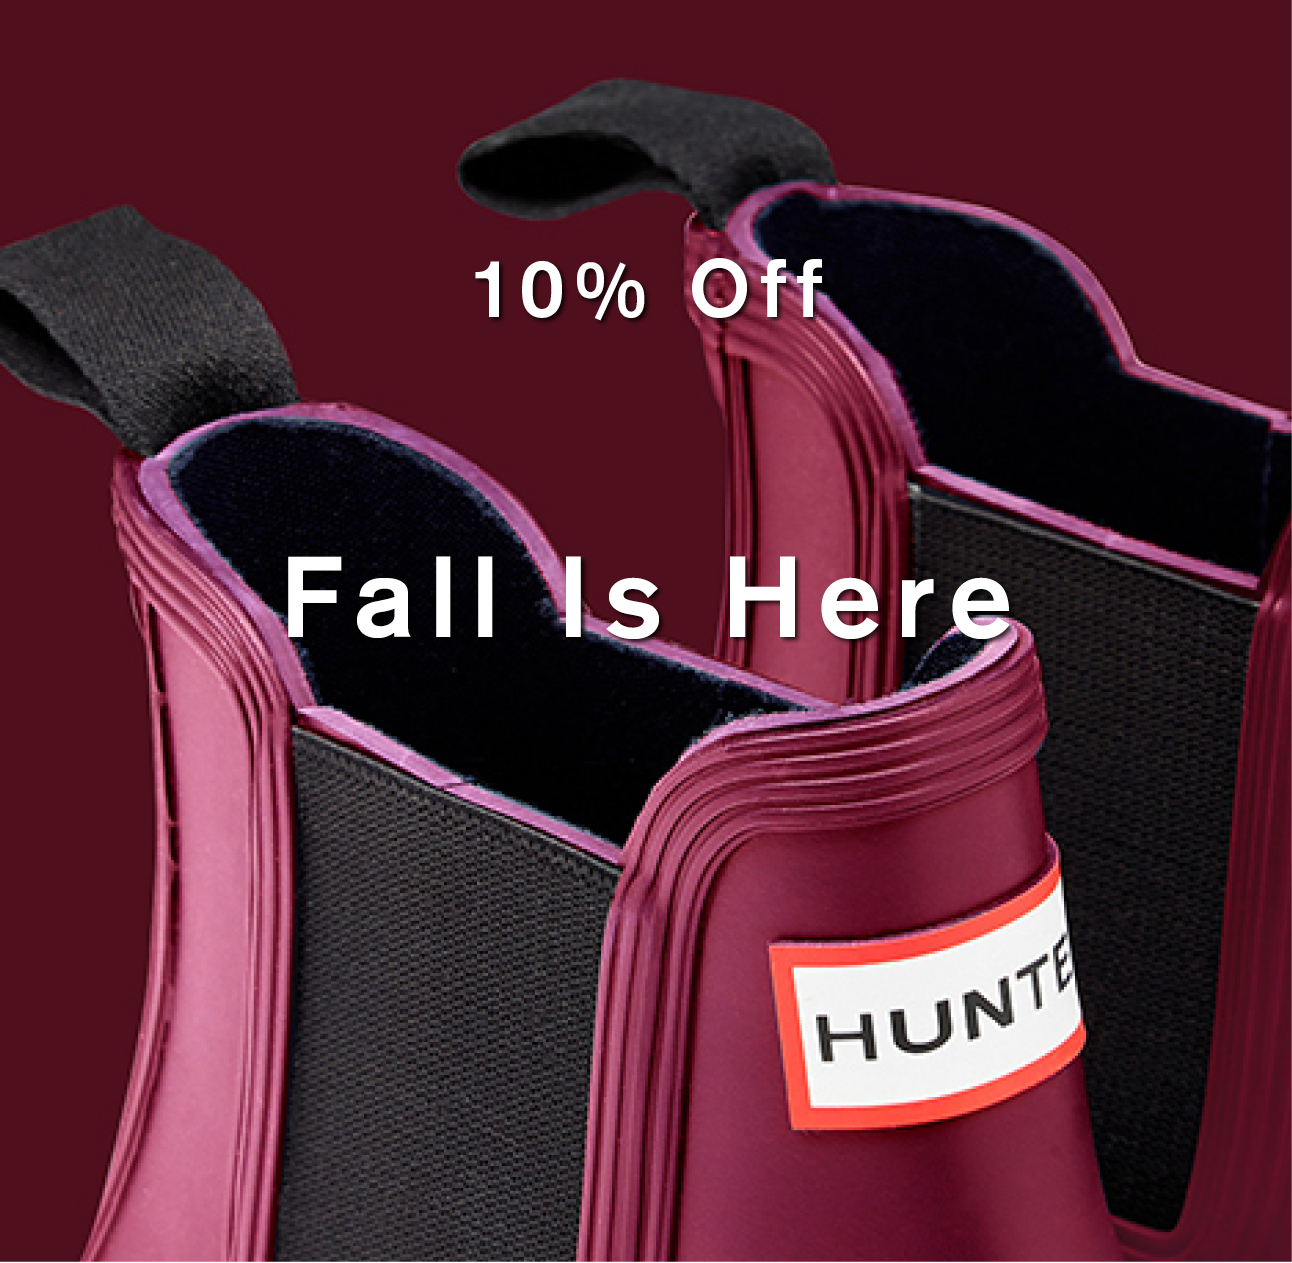 10% off Fall is Here